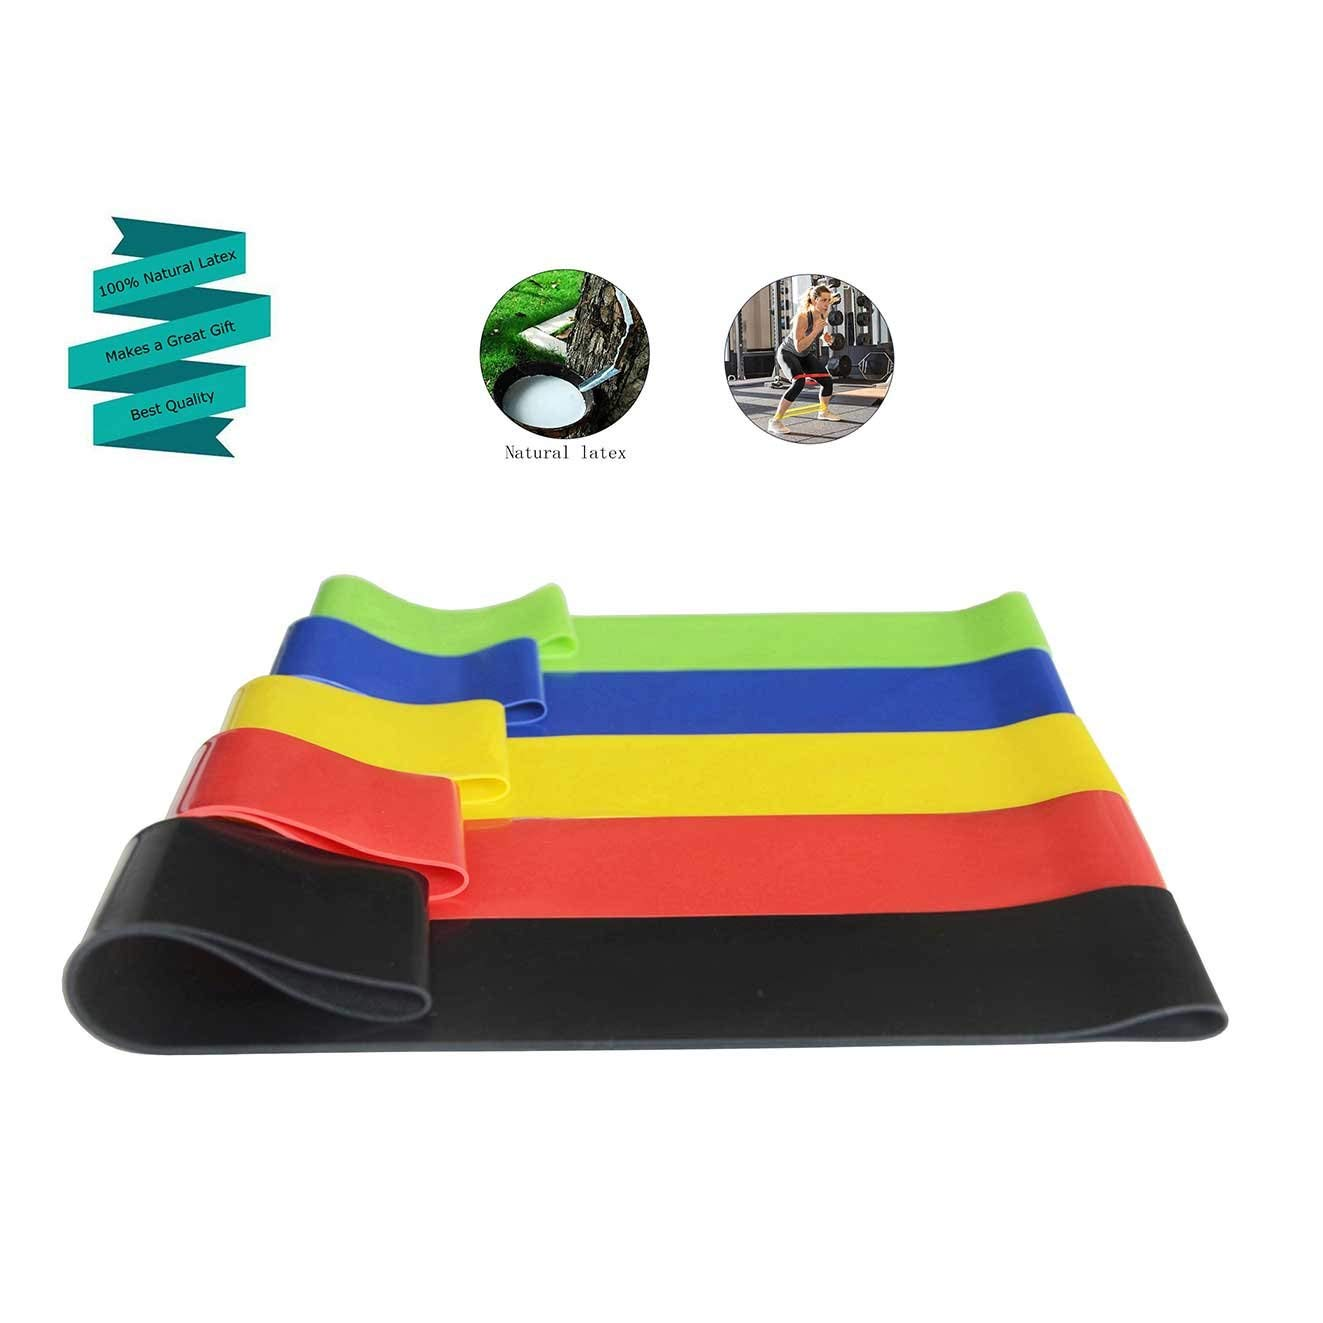 asveryook resistance bands for legs and butt, resistance loops,workout bandsfor Home Fitness, Stretching, Physical Therapy, natural latex mini bands for exercise